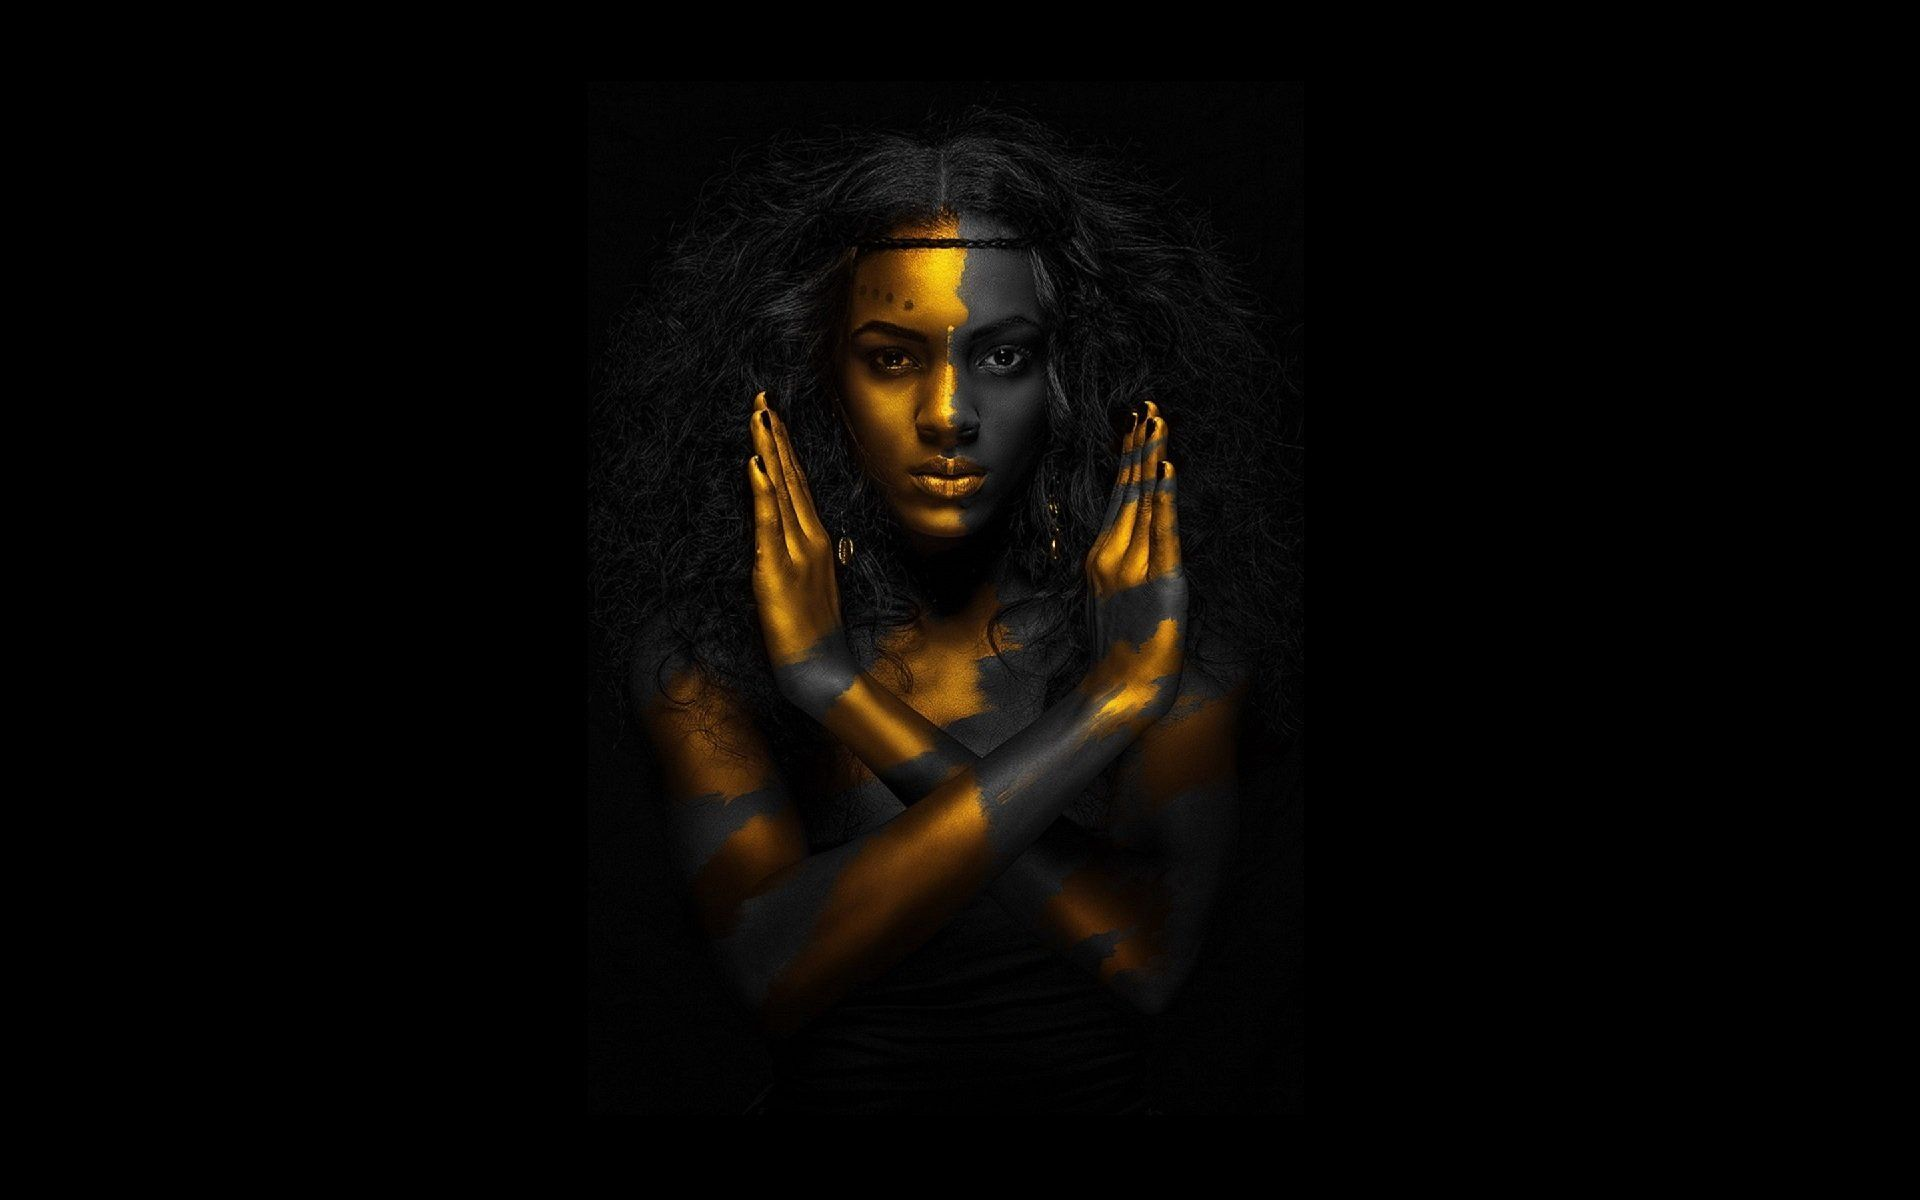 African Woman Wallpapers   Top Free African Woman Backgrounds ...